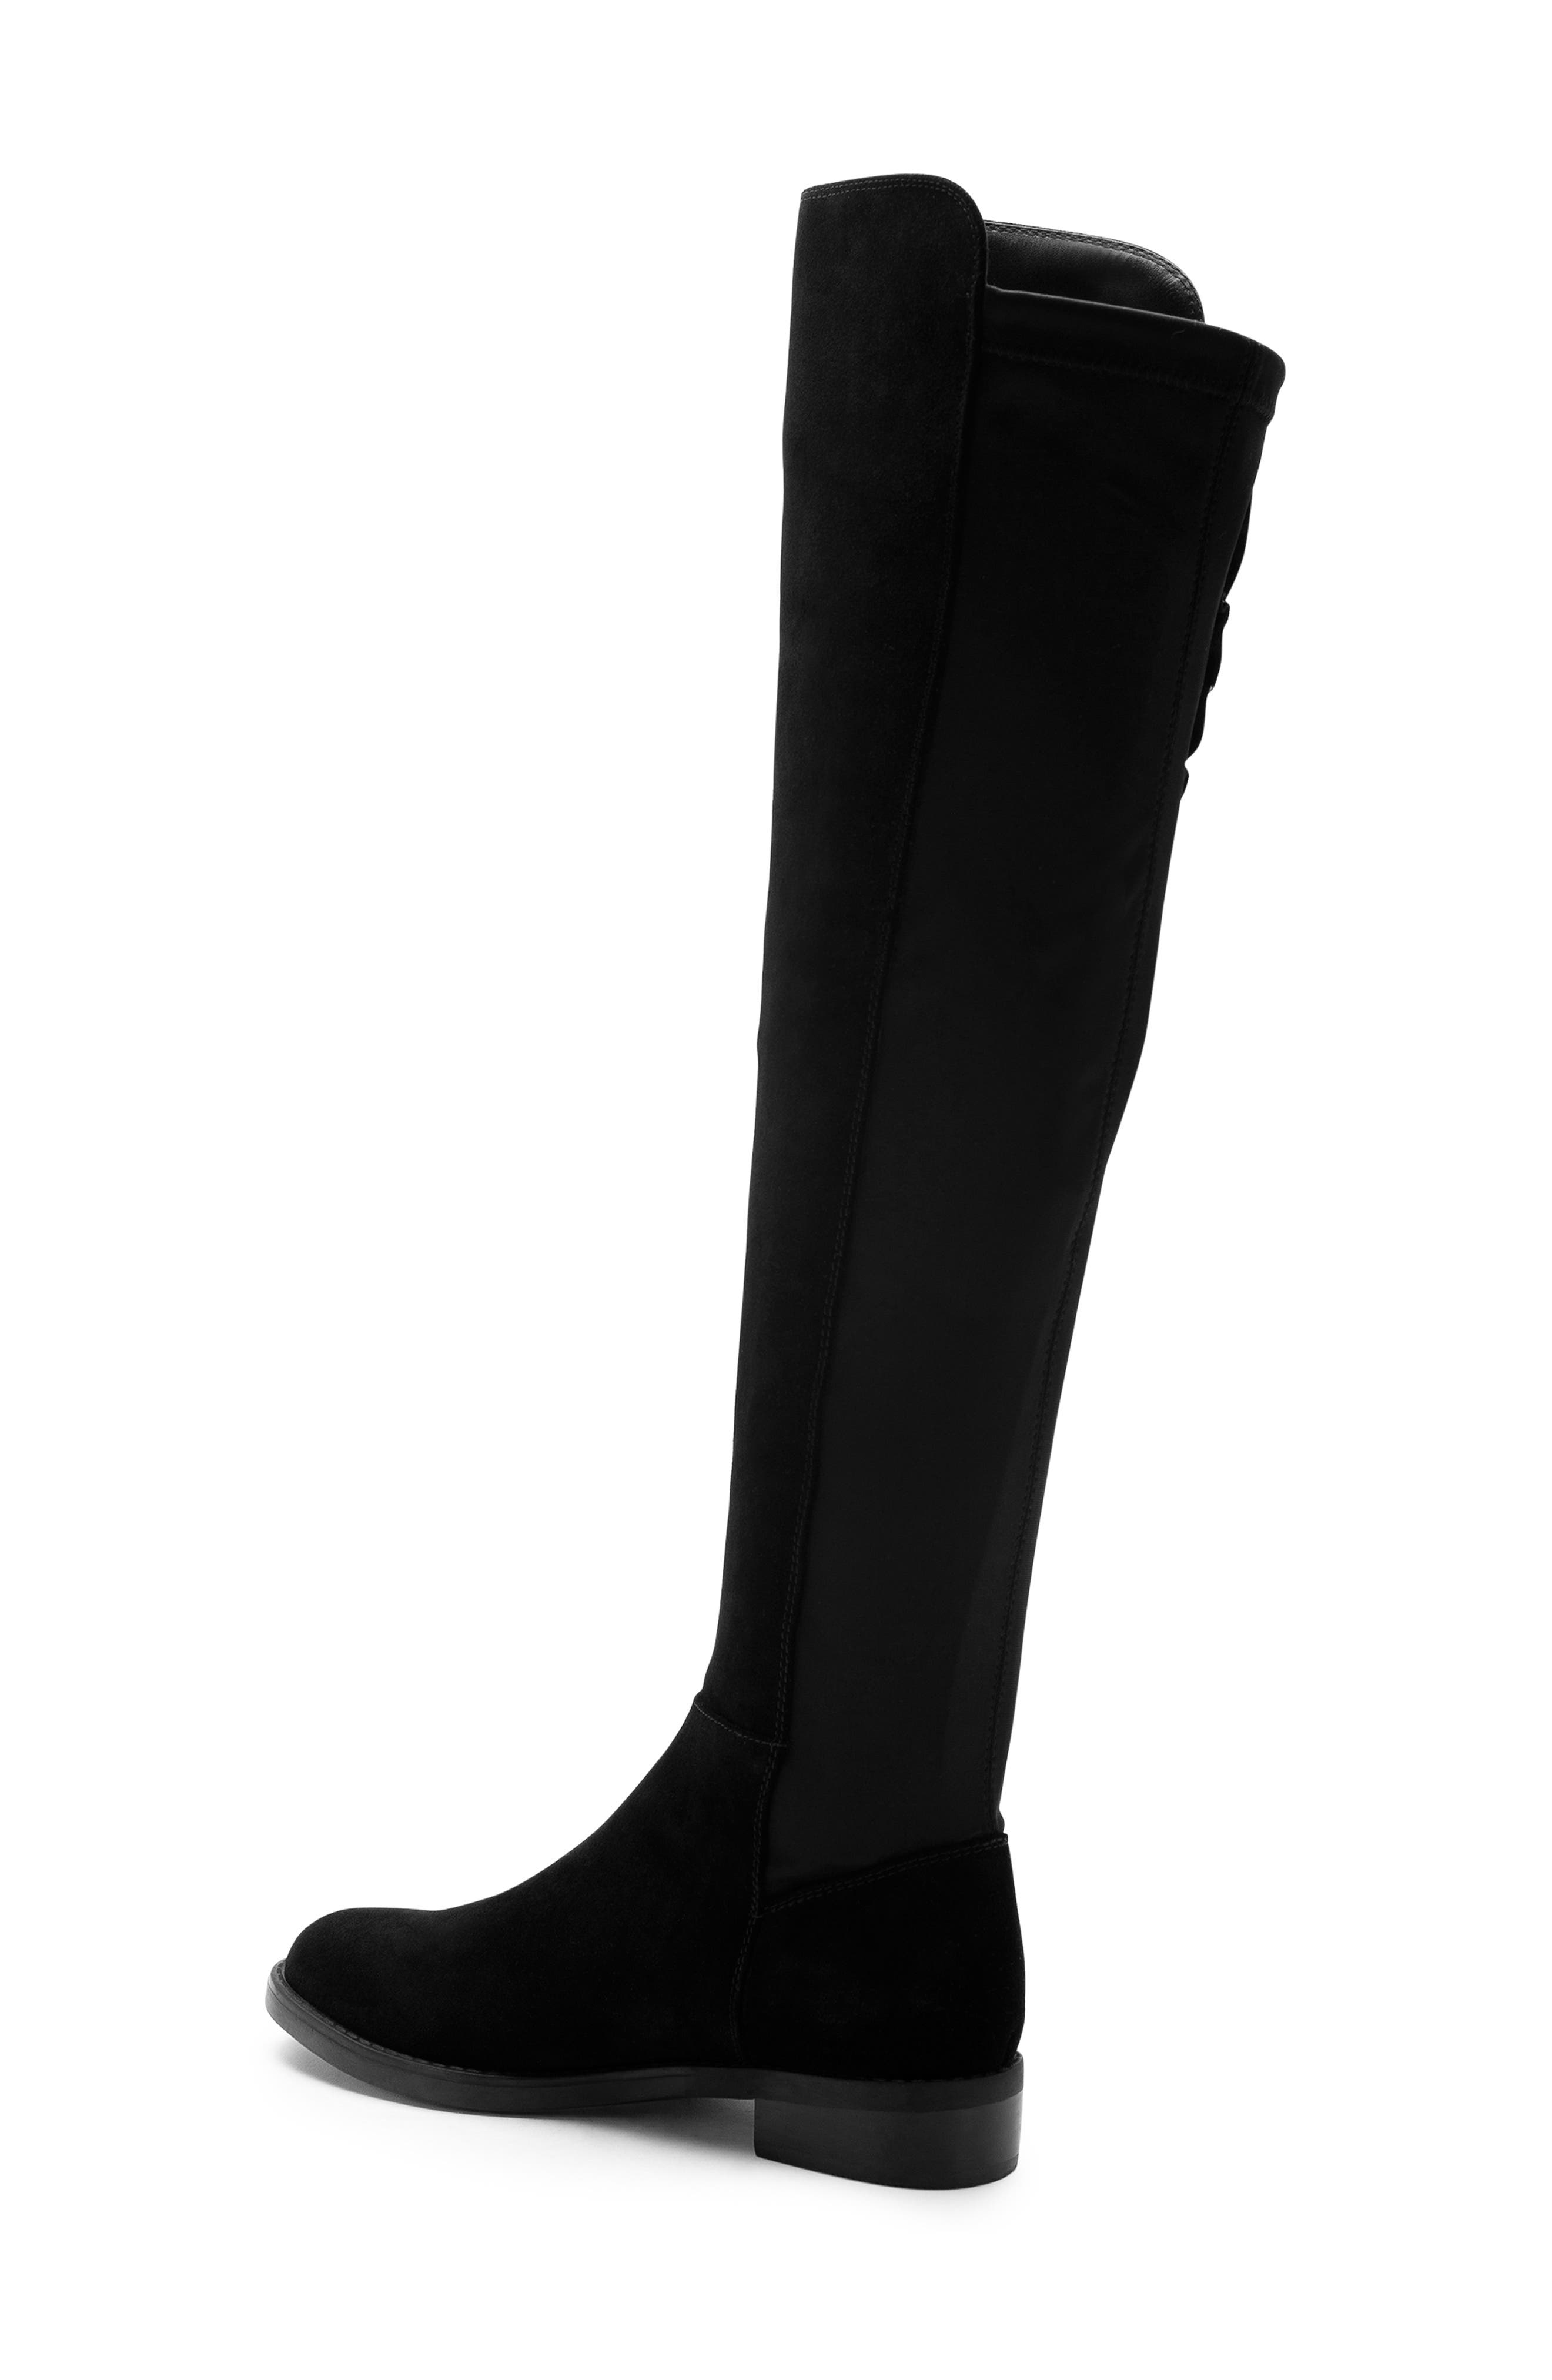 2c7440d7cc2 Waterproof Over-the-Knee Boots for Women